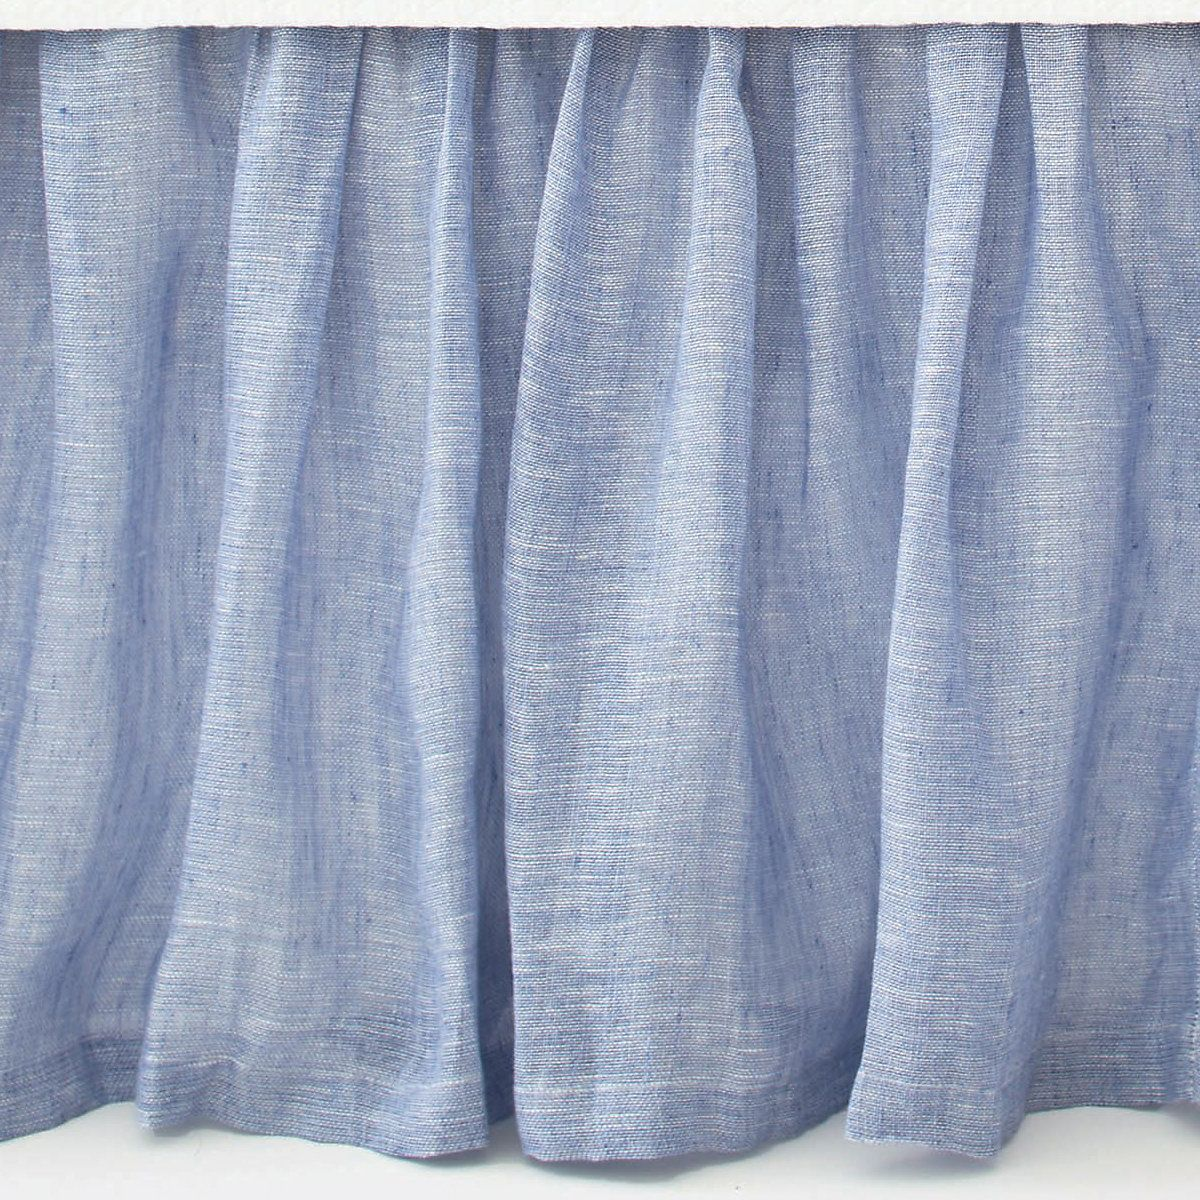 Pine Cone Hill Savannah Linen Chambray French Blue Bed Skirt Bedskirt Blue Bedding Blue Shades Colors